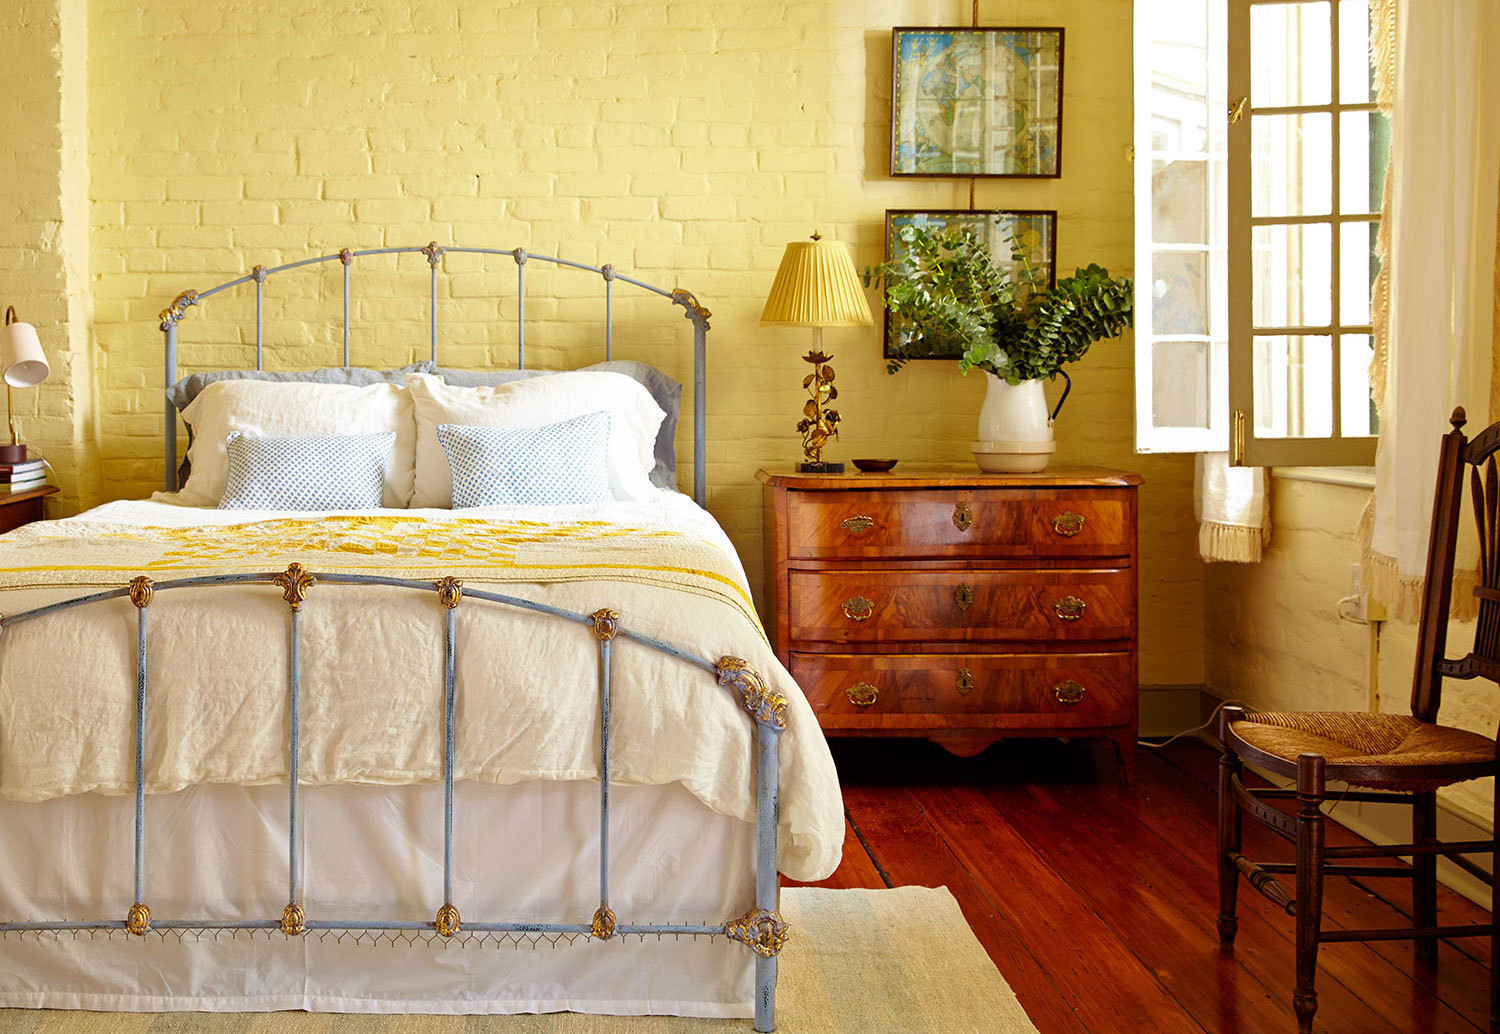 The master bedroom of a historic New Orleans home, reimagined by Logan Killen Interiors.